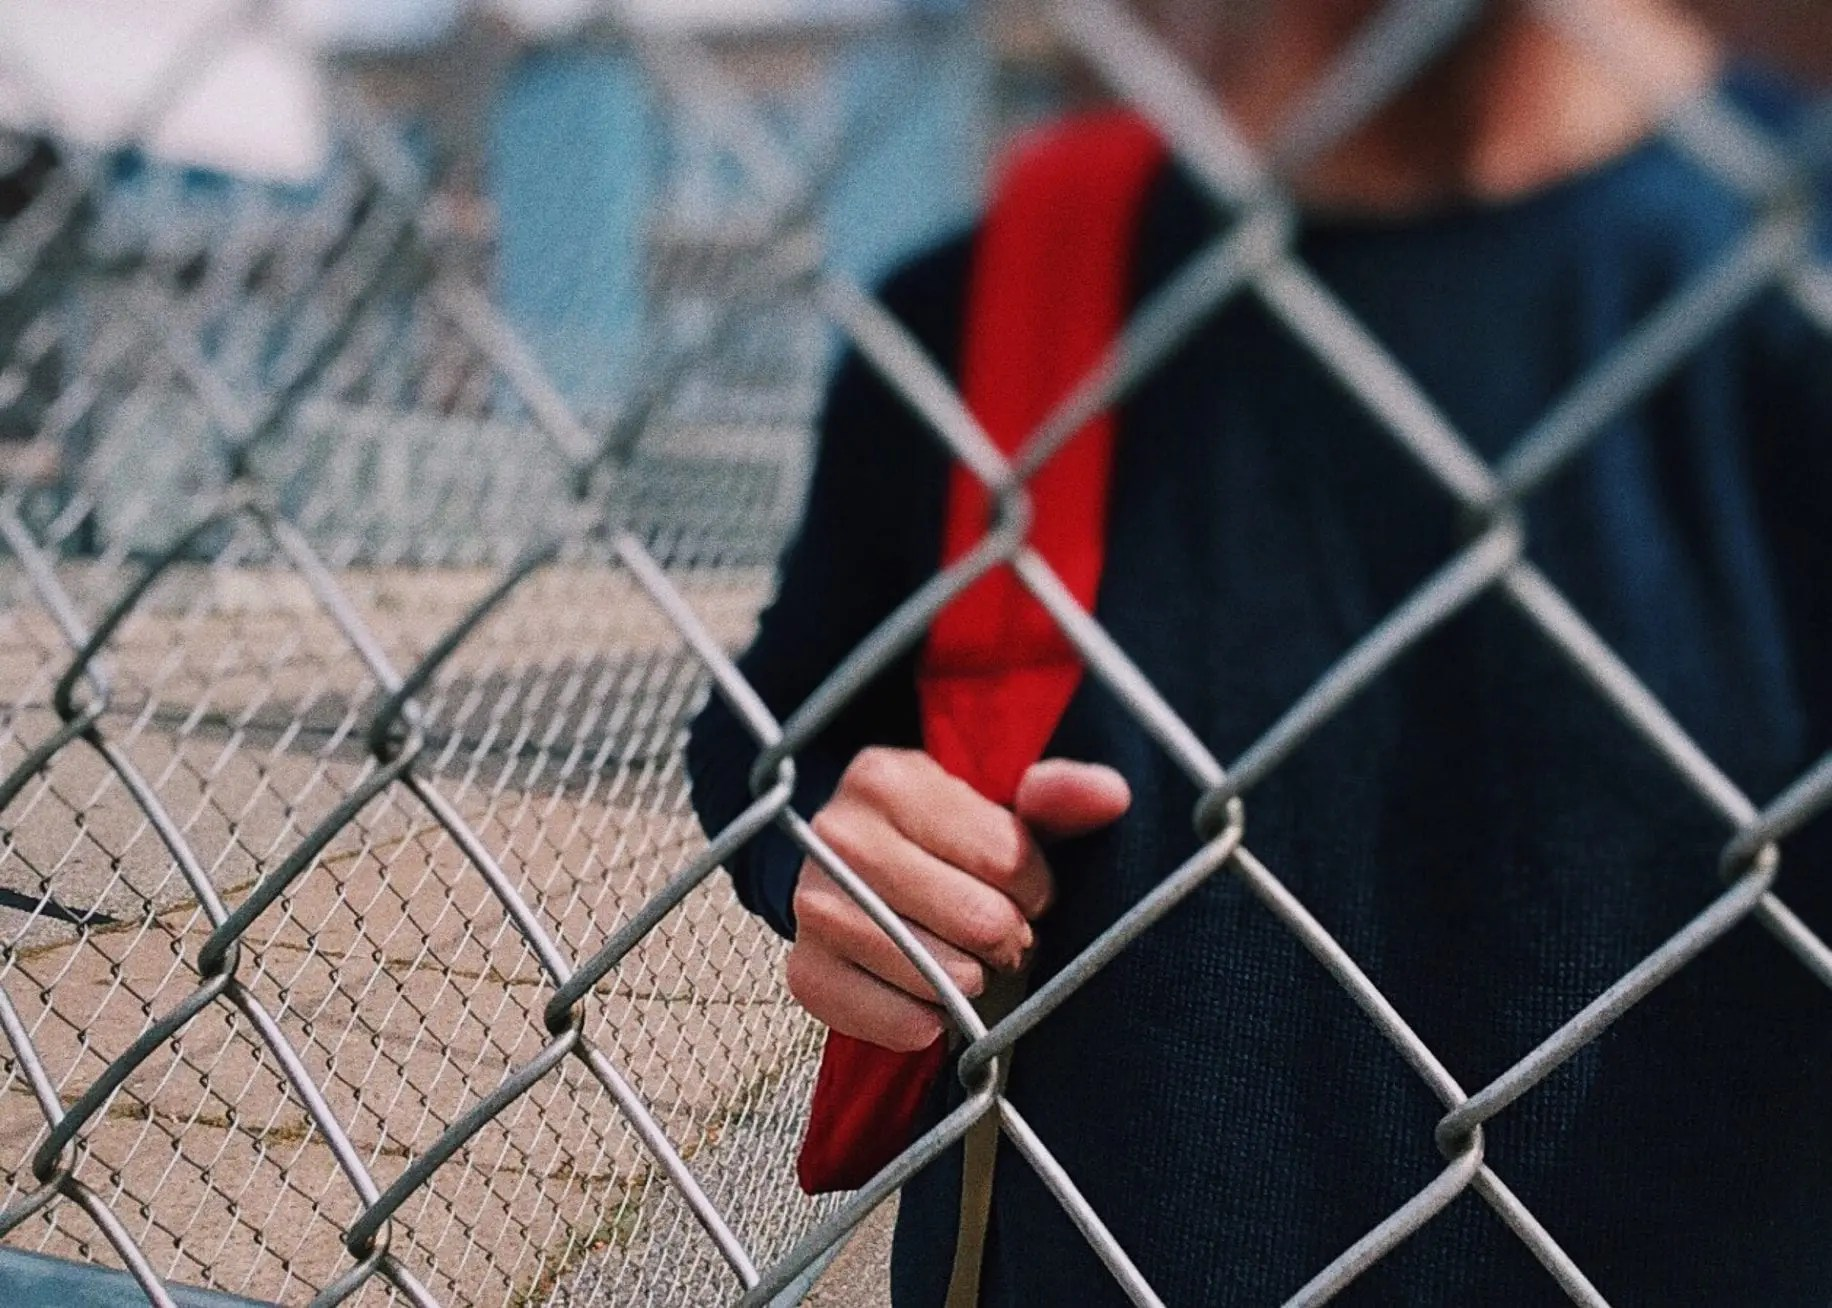 Rutgers expert school violence prevention weighs in on whether beefed up security measures keep kids safe.